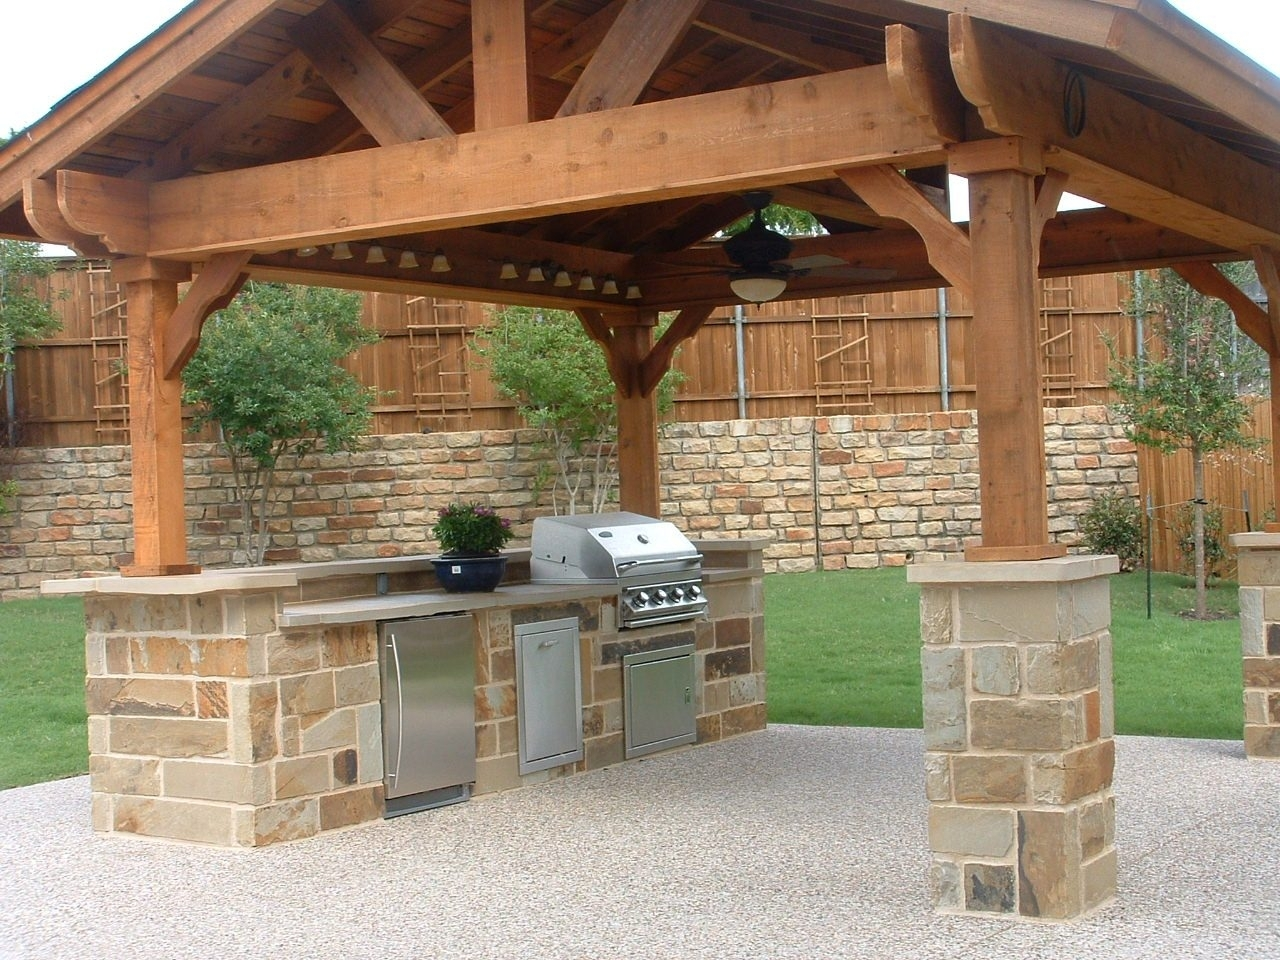 Image of: Outdoor Kitchen Ideas Green Egg Stone Walls Texture Backsplash For Outdoor Kitchen Wood Countertops Nice Outdoor Kitchen Wood Countertops Inspiration